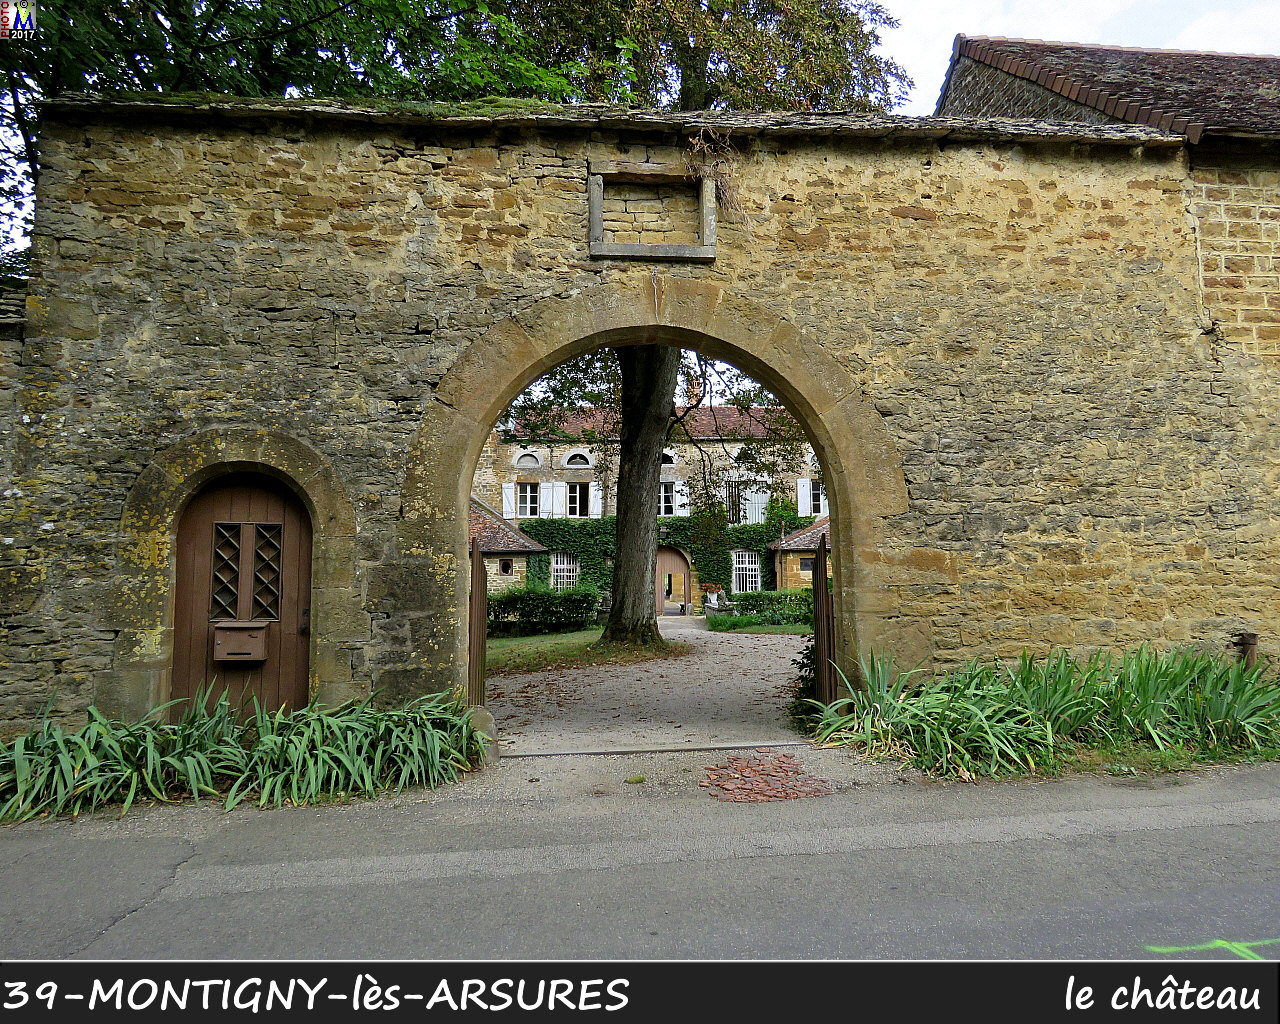 39MONTIGNY-les-ARSURES_chateau_100.jpg